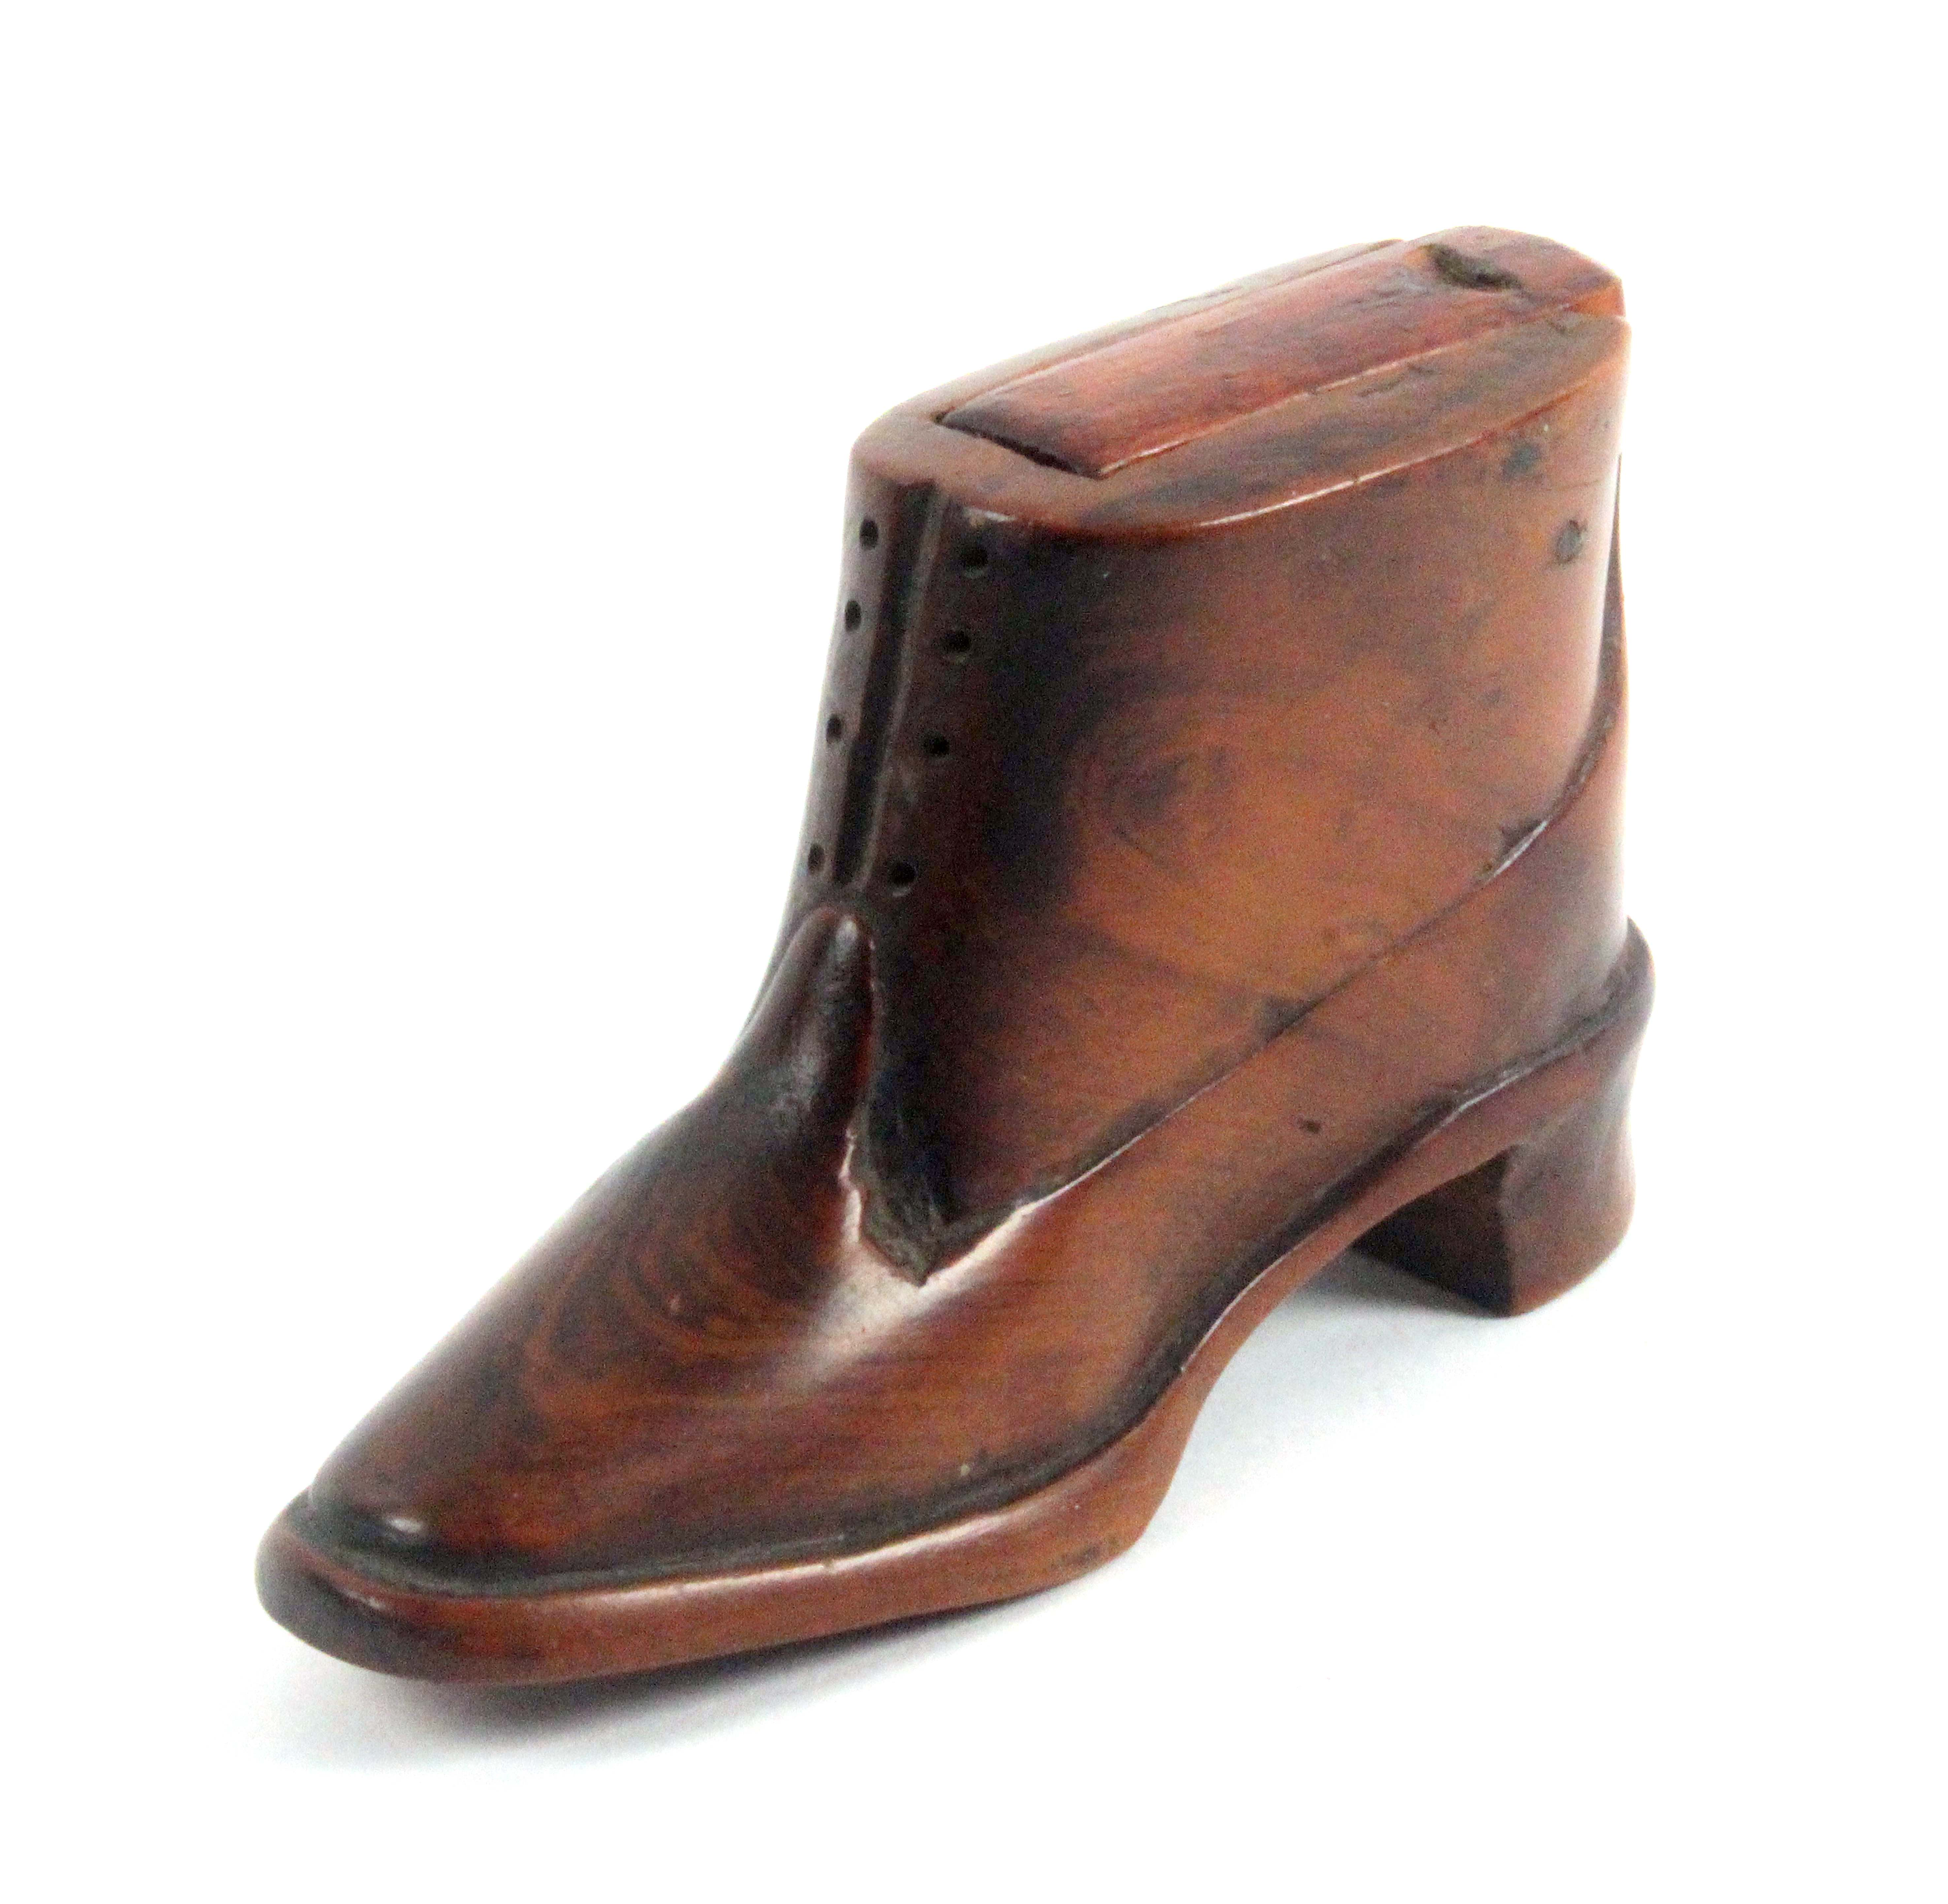 An unusual Boer War P.O.W. shoe form snuff box, in cedar wood with carved details, rounded toe,